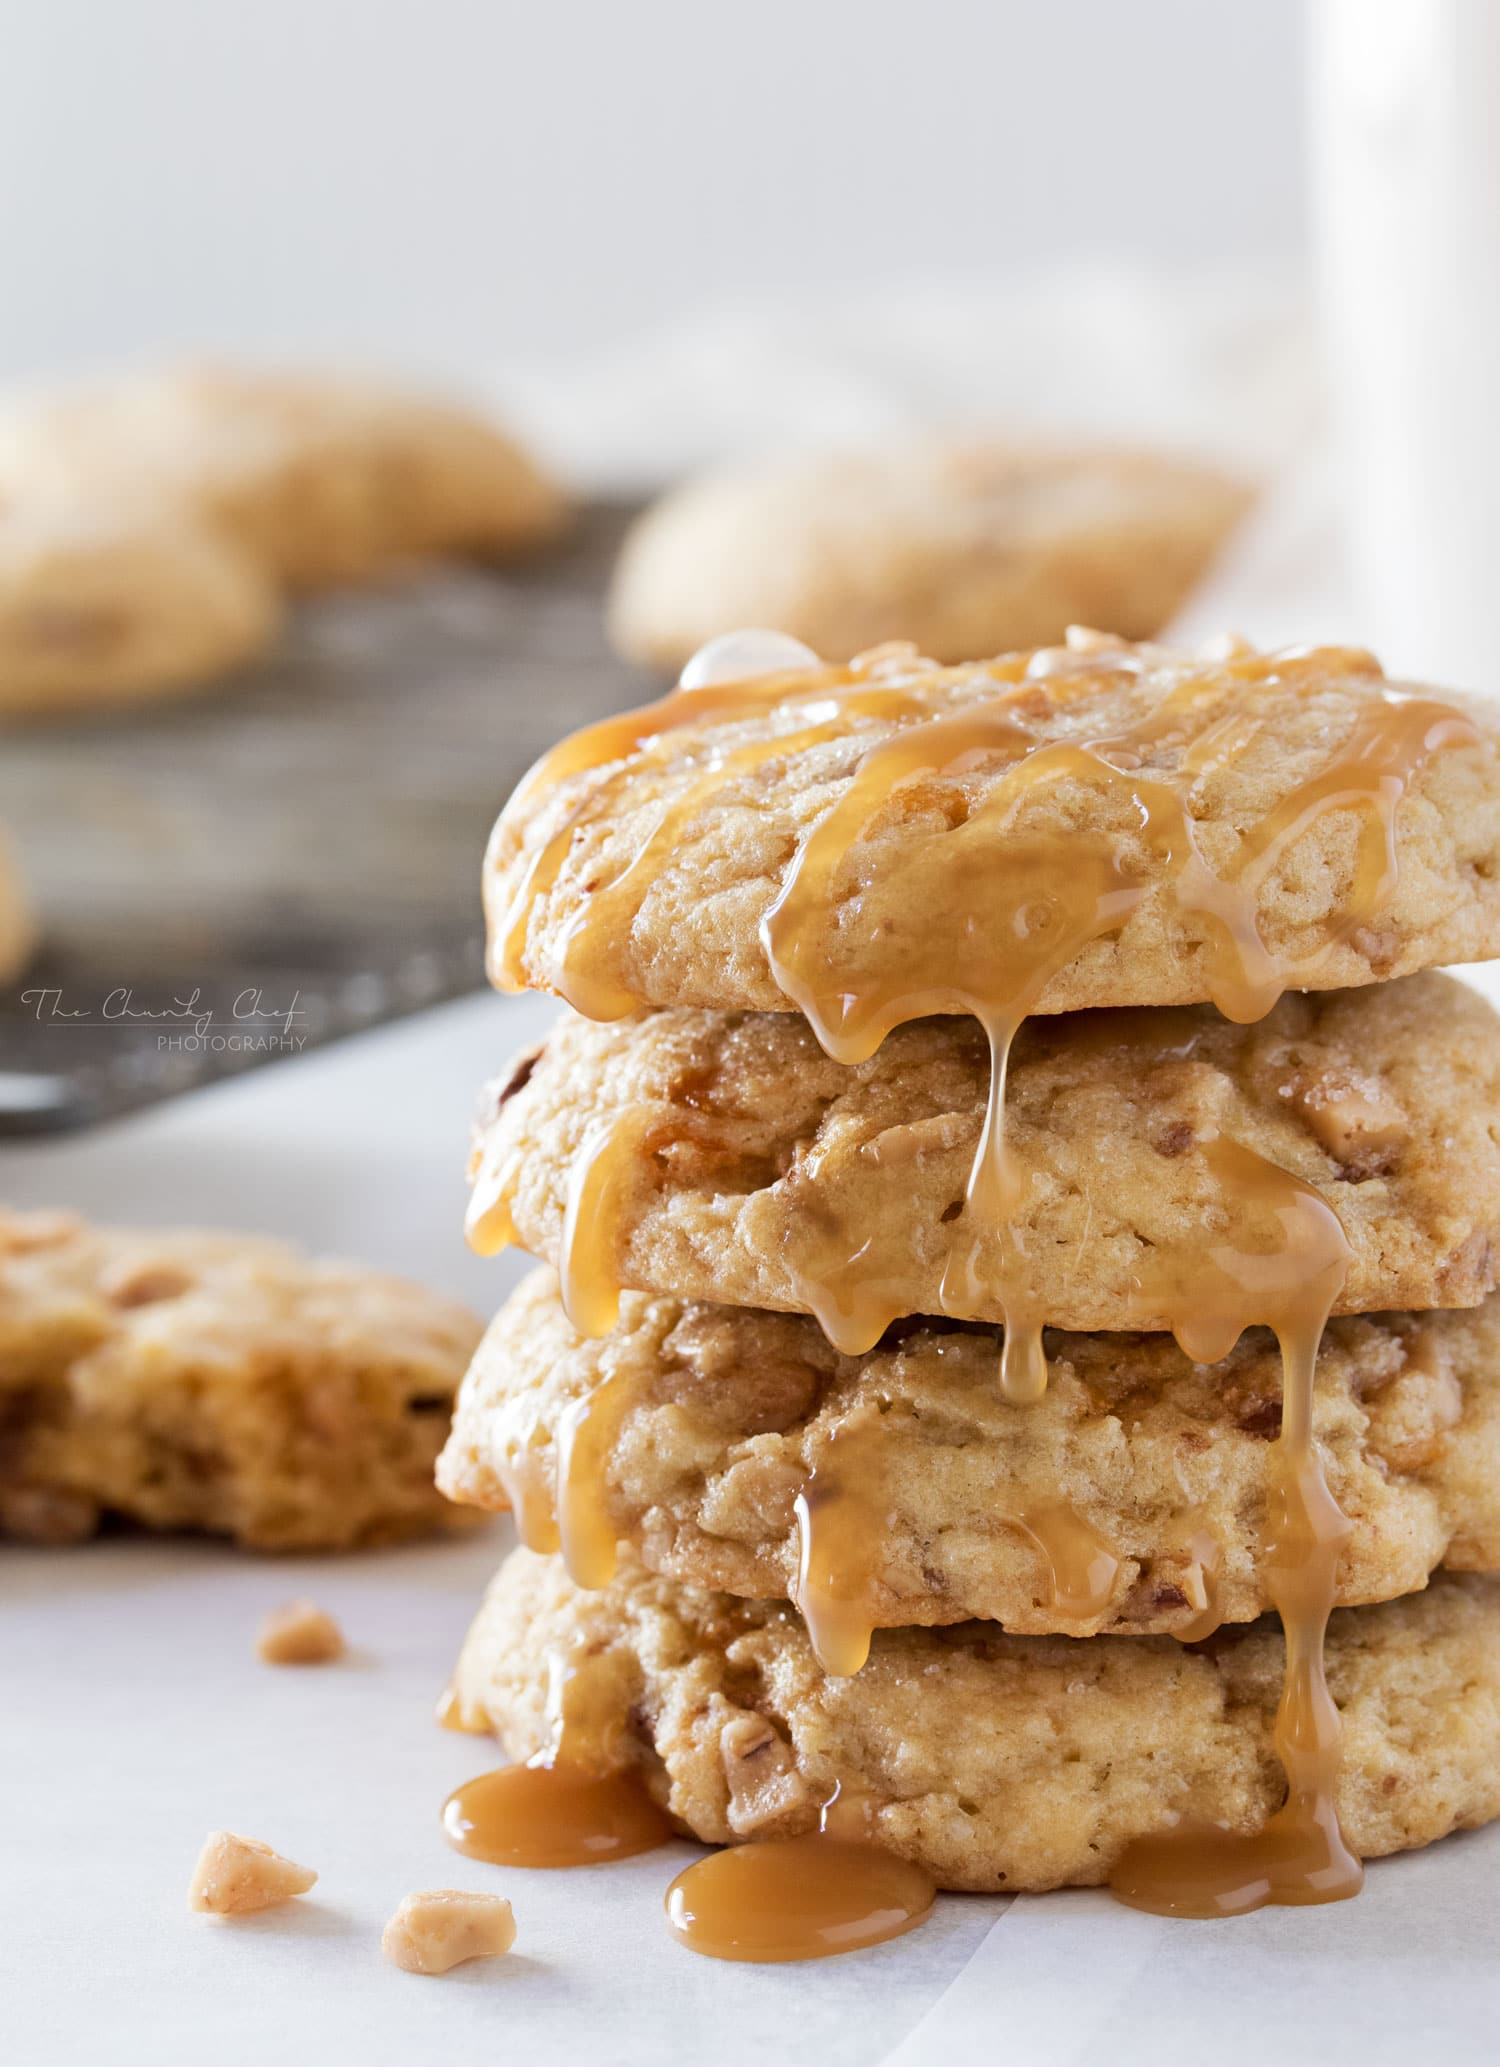 Chewy Butterfinger Toffee Cookies   Soft, chewy and buttery.. these toffee cookies are studded with Butterfinger pieces and chewy bits of toffee. Drizzle them with caramel for extra decadence!   http://thechunkychef.com